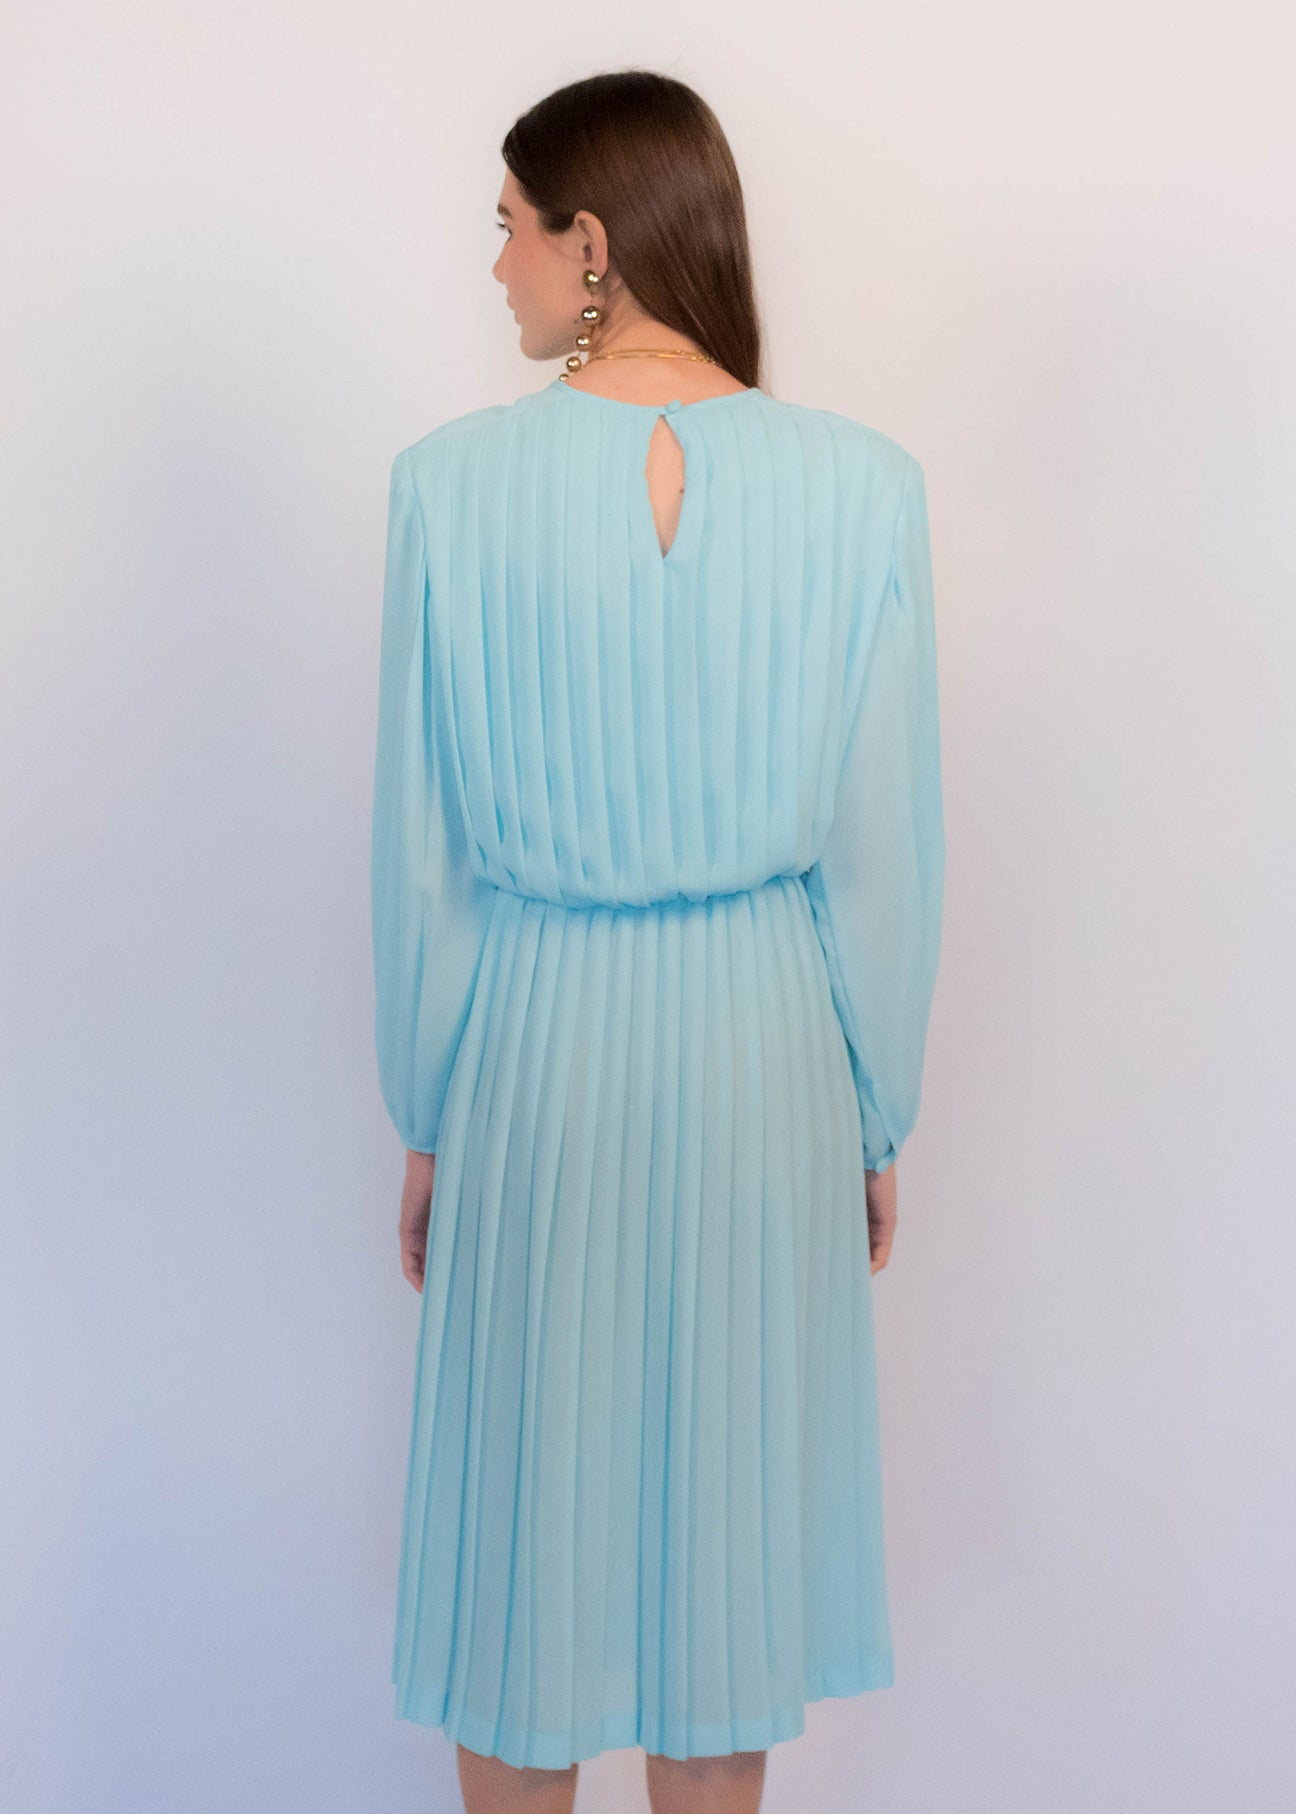 80s Pleated Sheer Dress